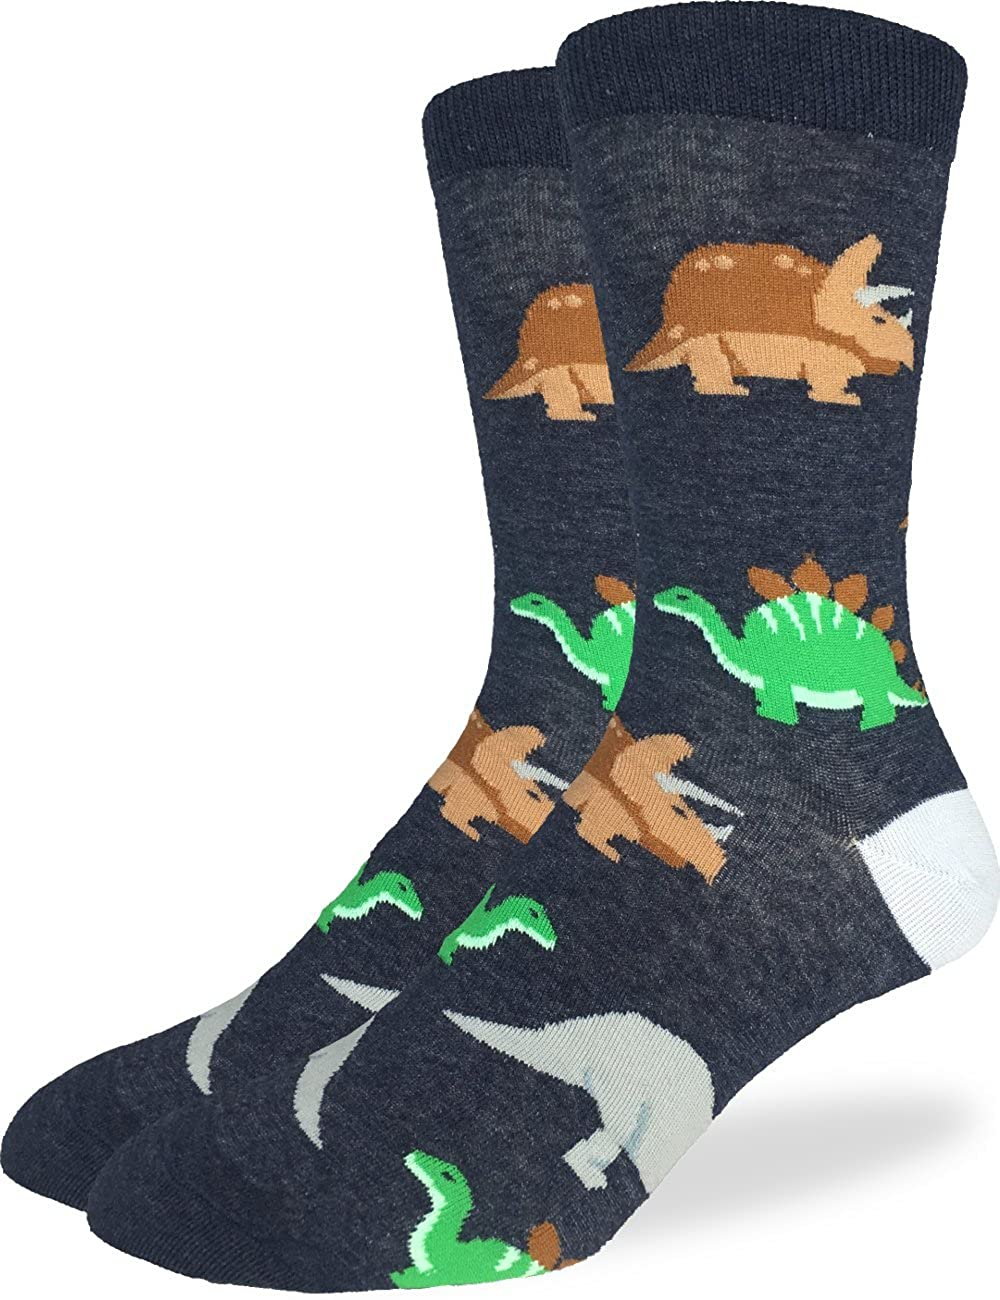 Big /& Tall Shoe Size 13-17 Good Luck Sock Mens Extra Large Dinosaur Socks